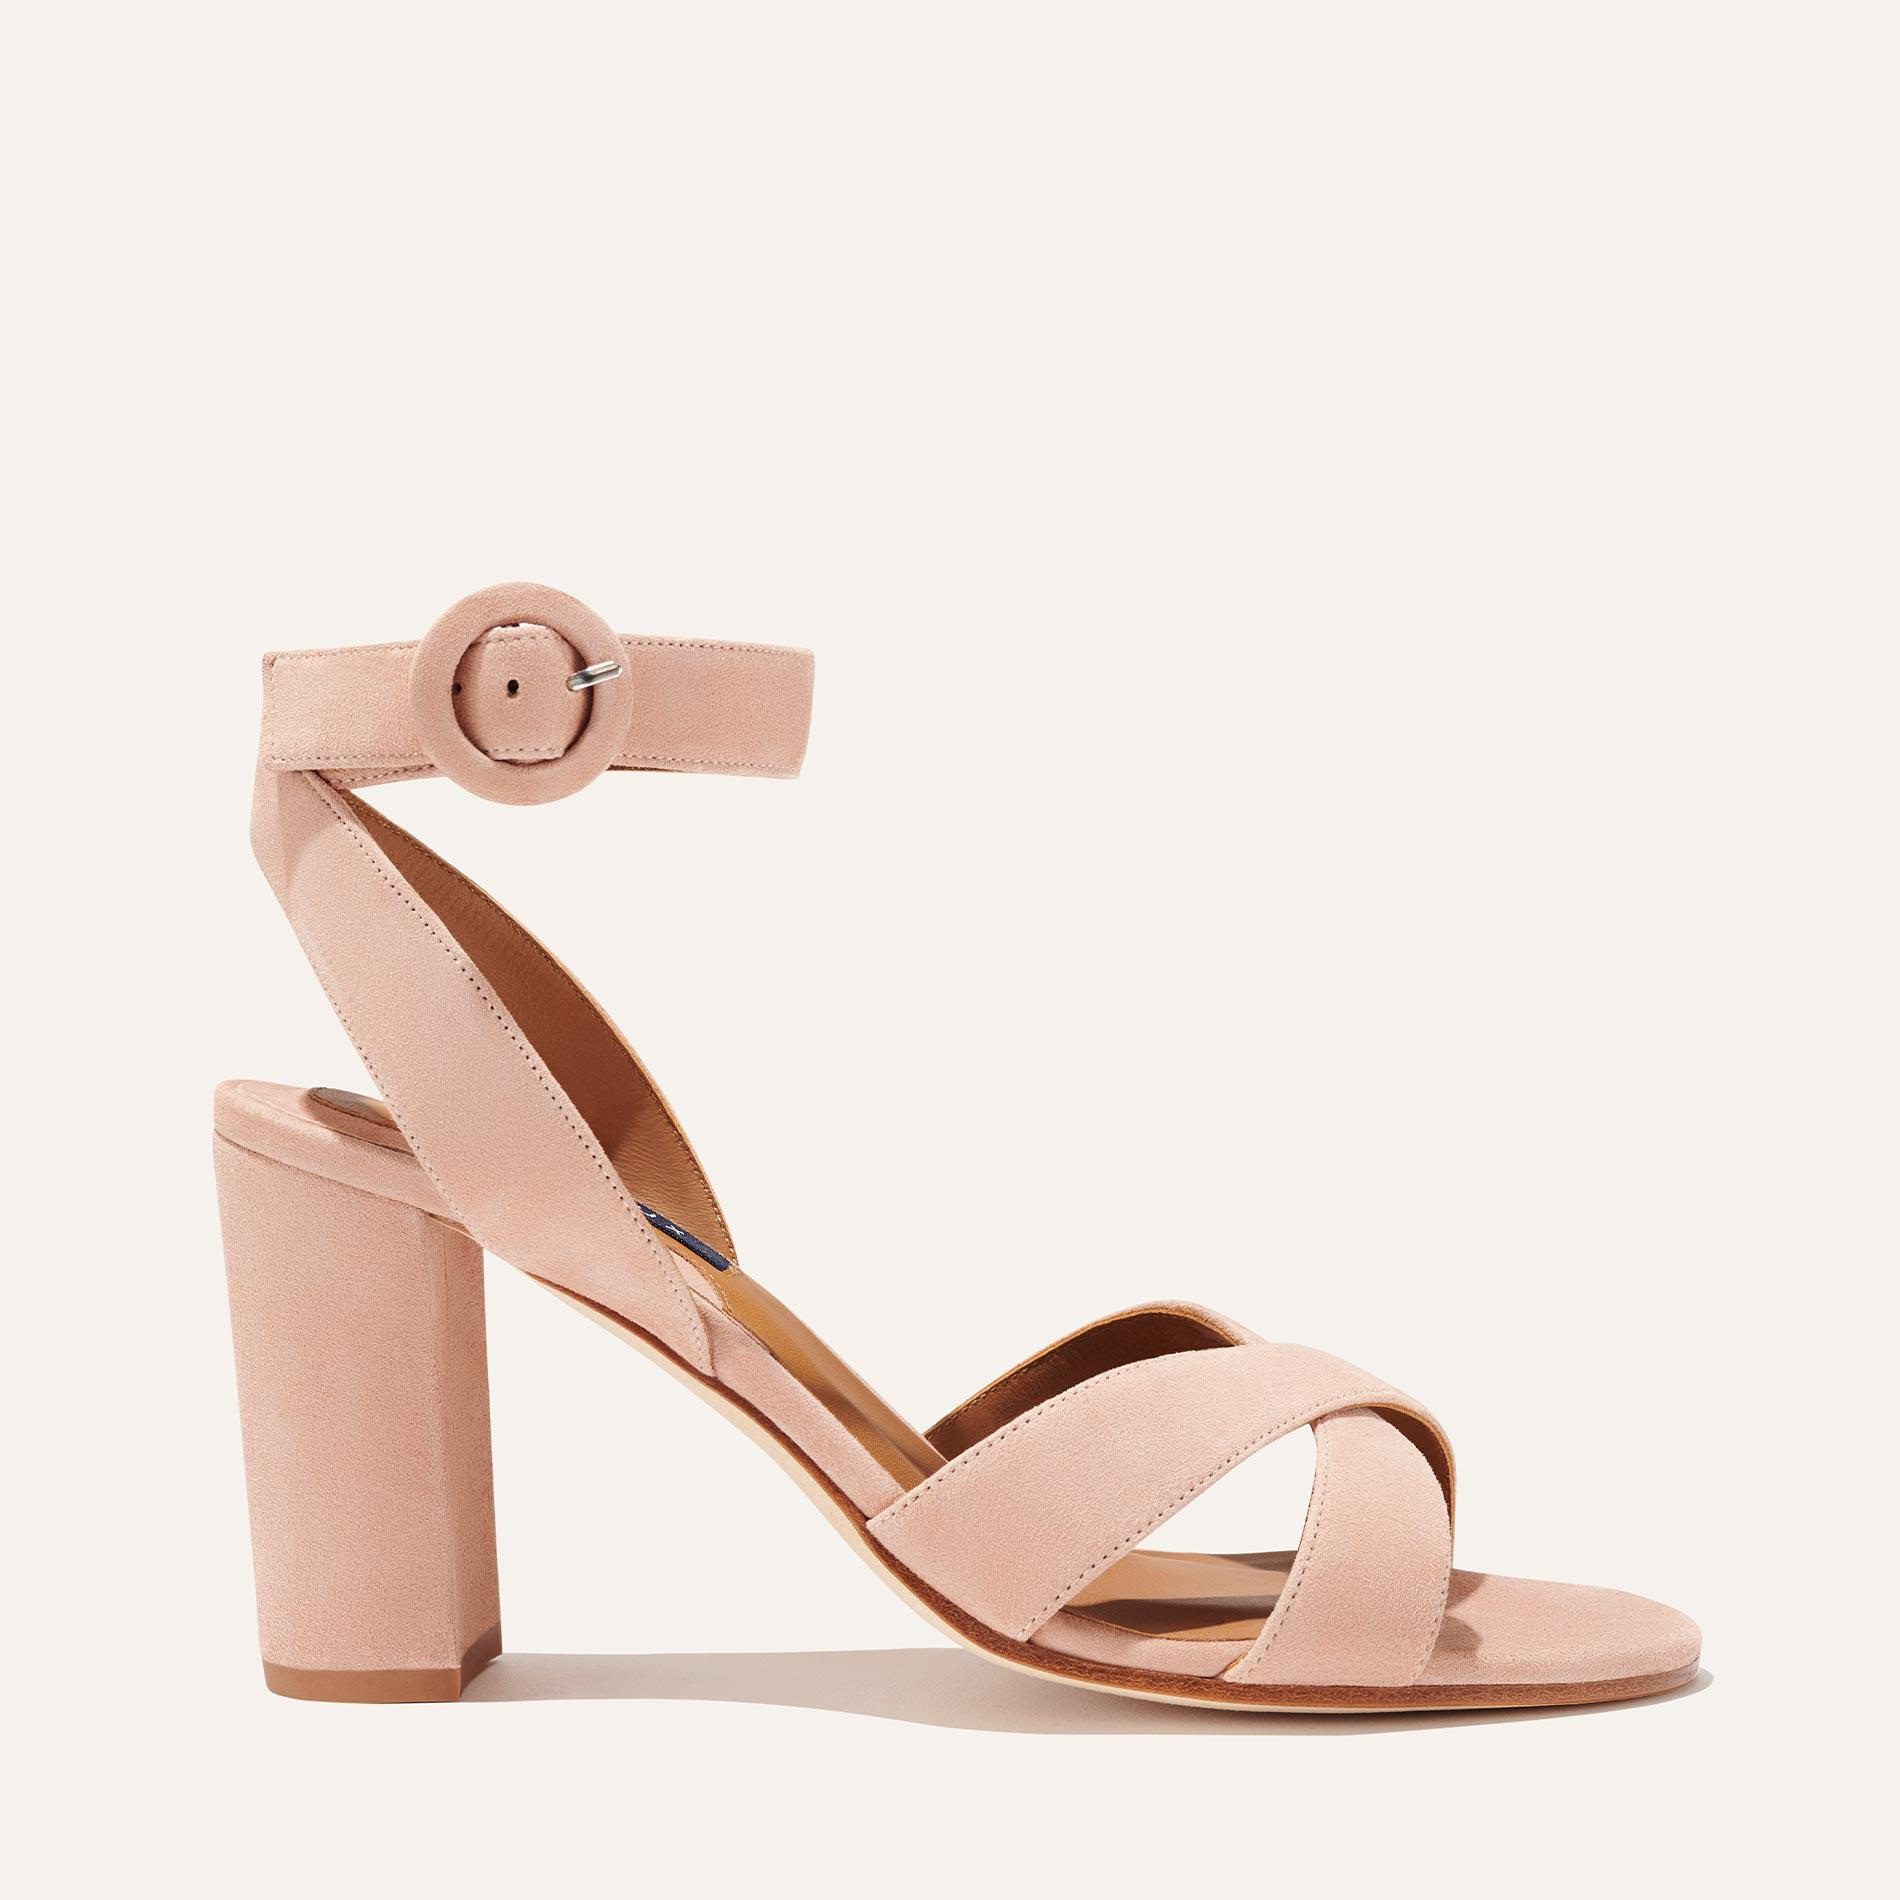 The Uptown Sandal - Almond Suede